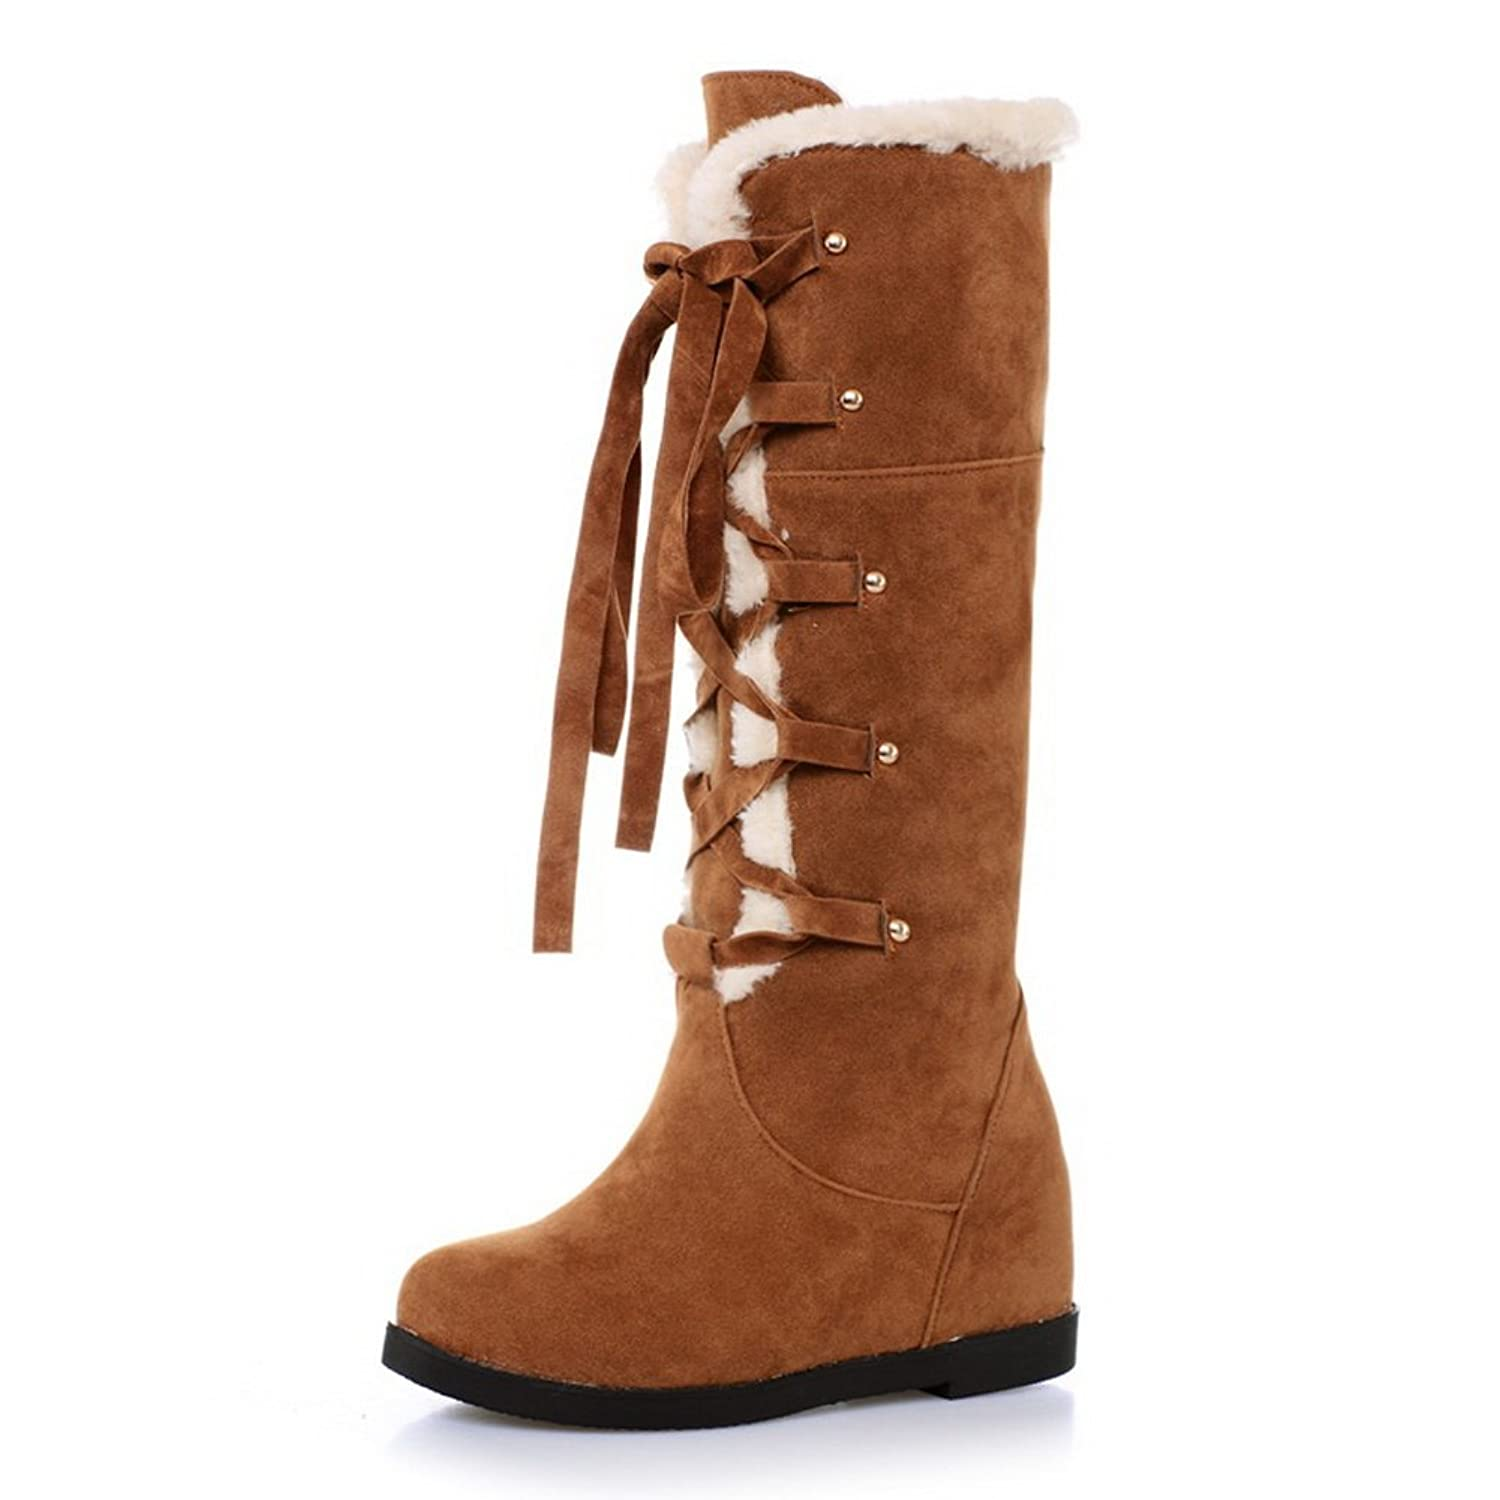 1TO9 Womens Lace-Up Snow Boots Low Heels Frosted Boots